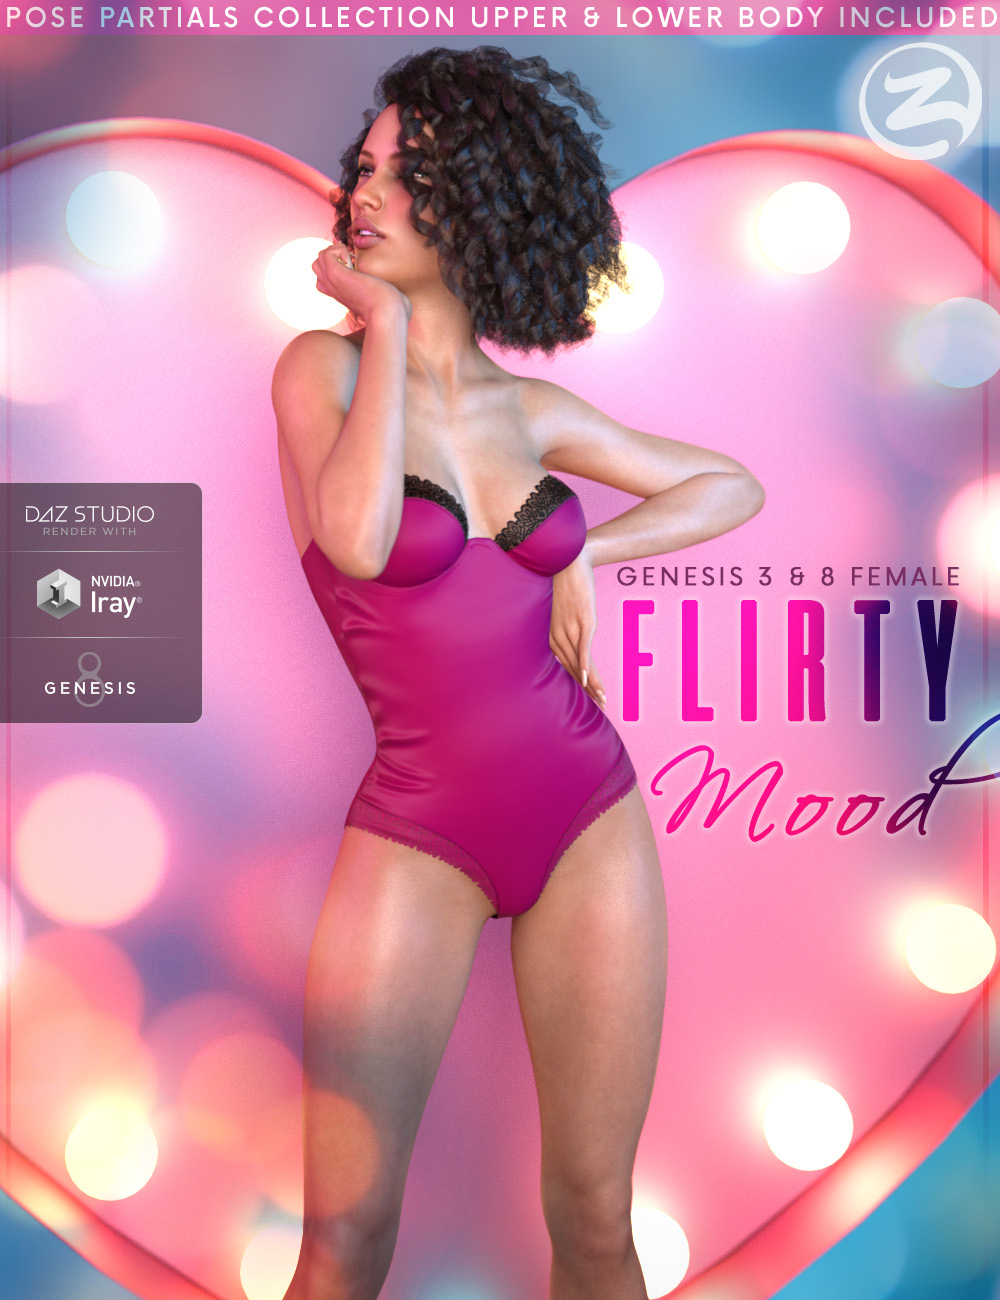 Z Flirty Mood - Poses and Partials for Genesis 3 and 8 Female by: Zeddicuss, 3D Models by Daz 3D